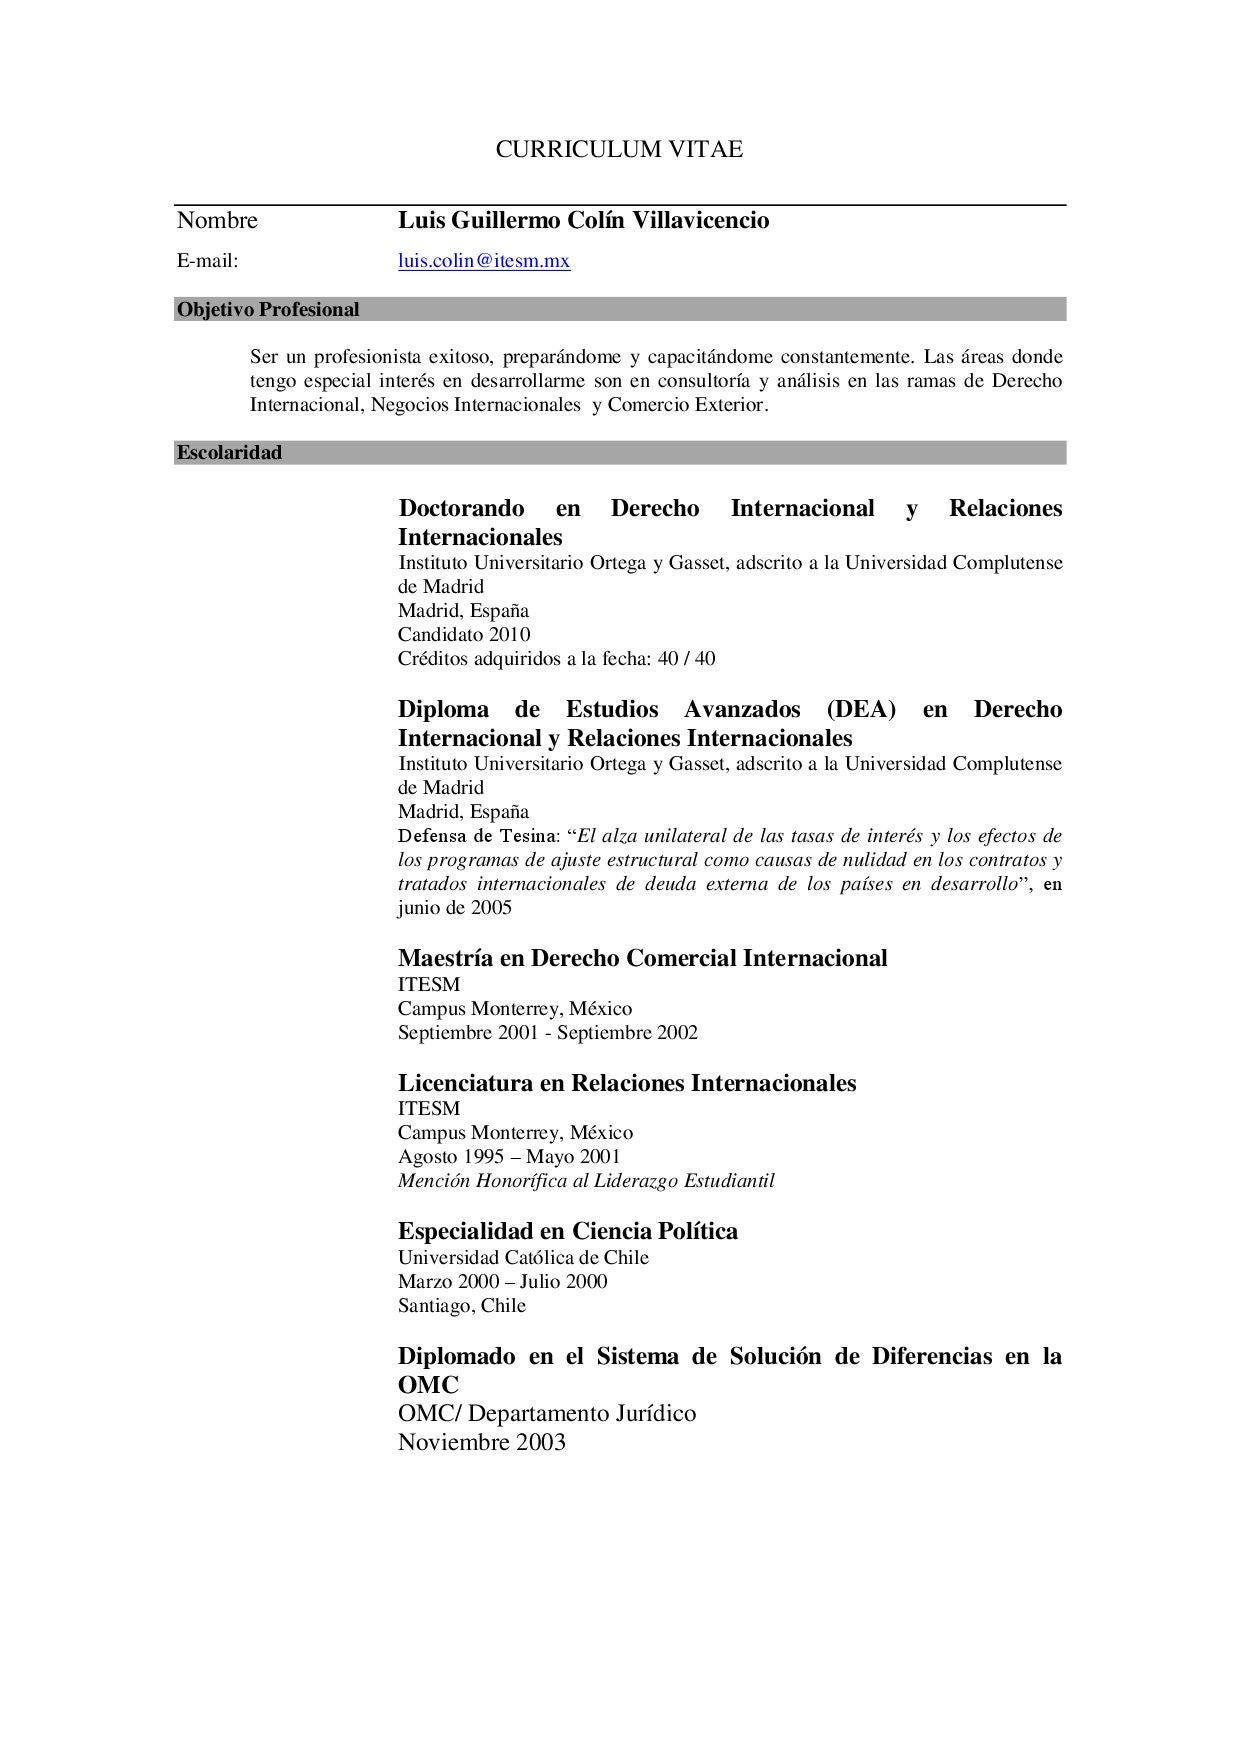 CURRICULUM by Luis Guillermo Colin - issuu